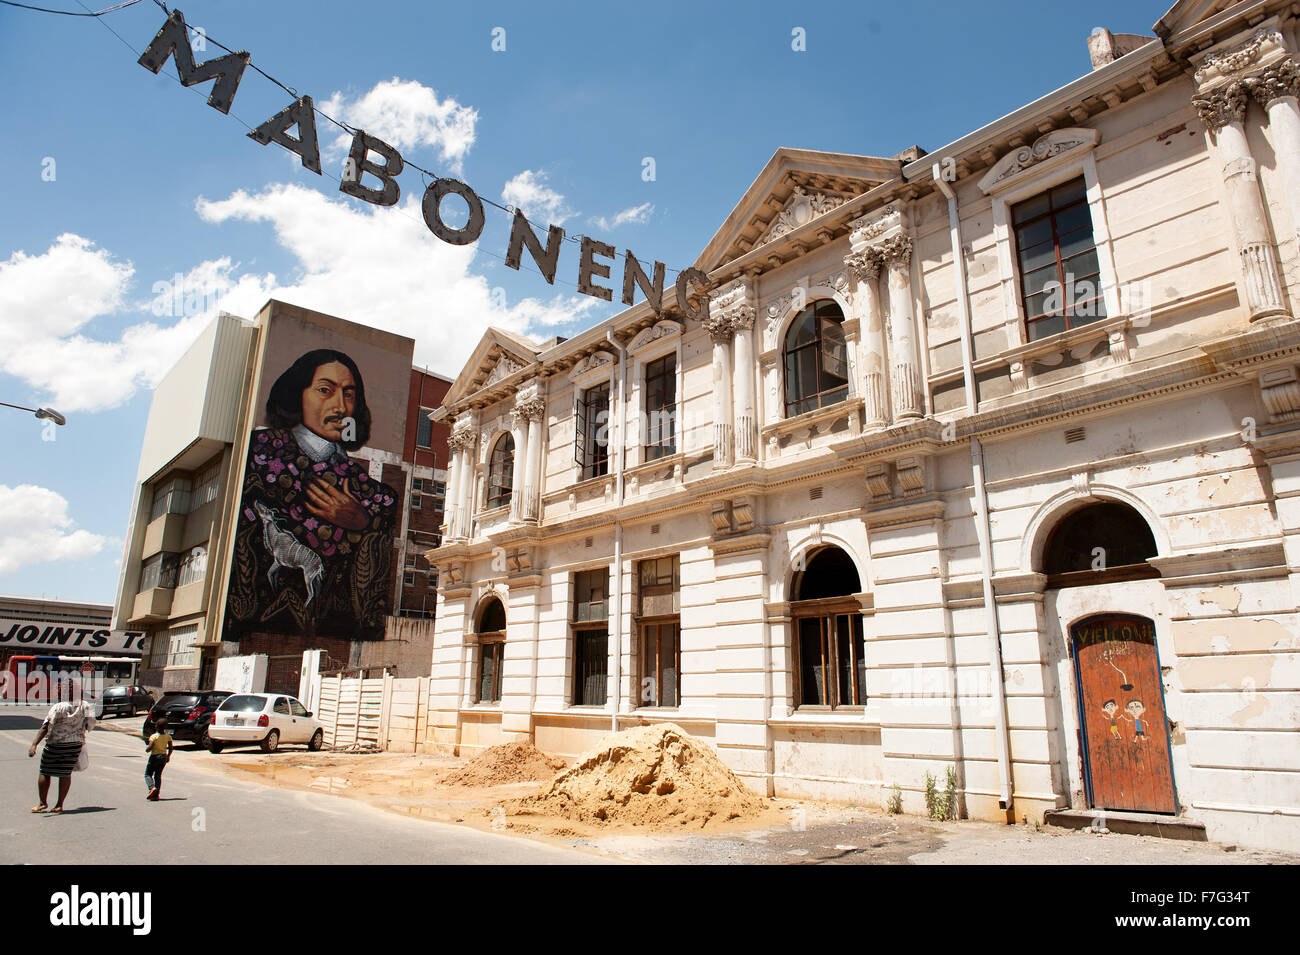 The Maboneng Precinct neighbourhood in downtown Johannesburg, South Africa. - Stock Image